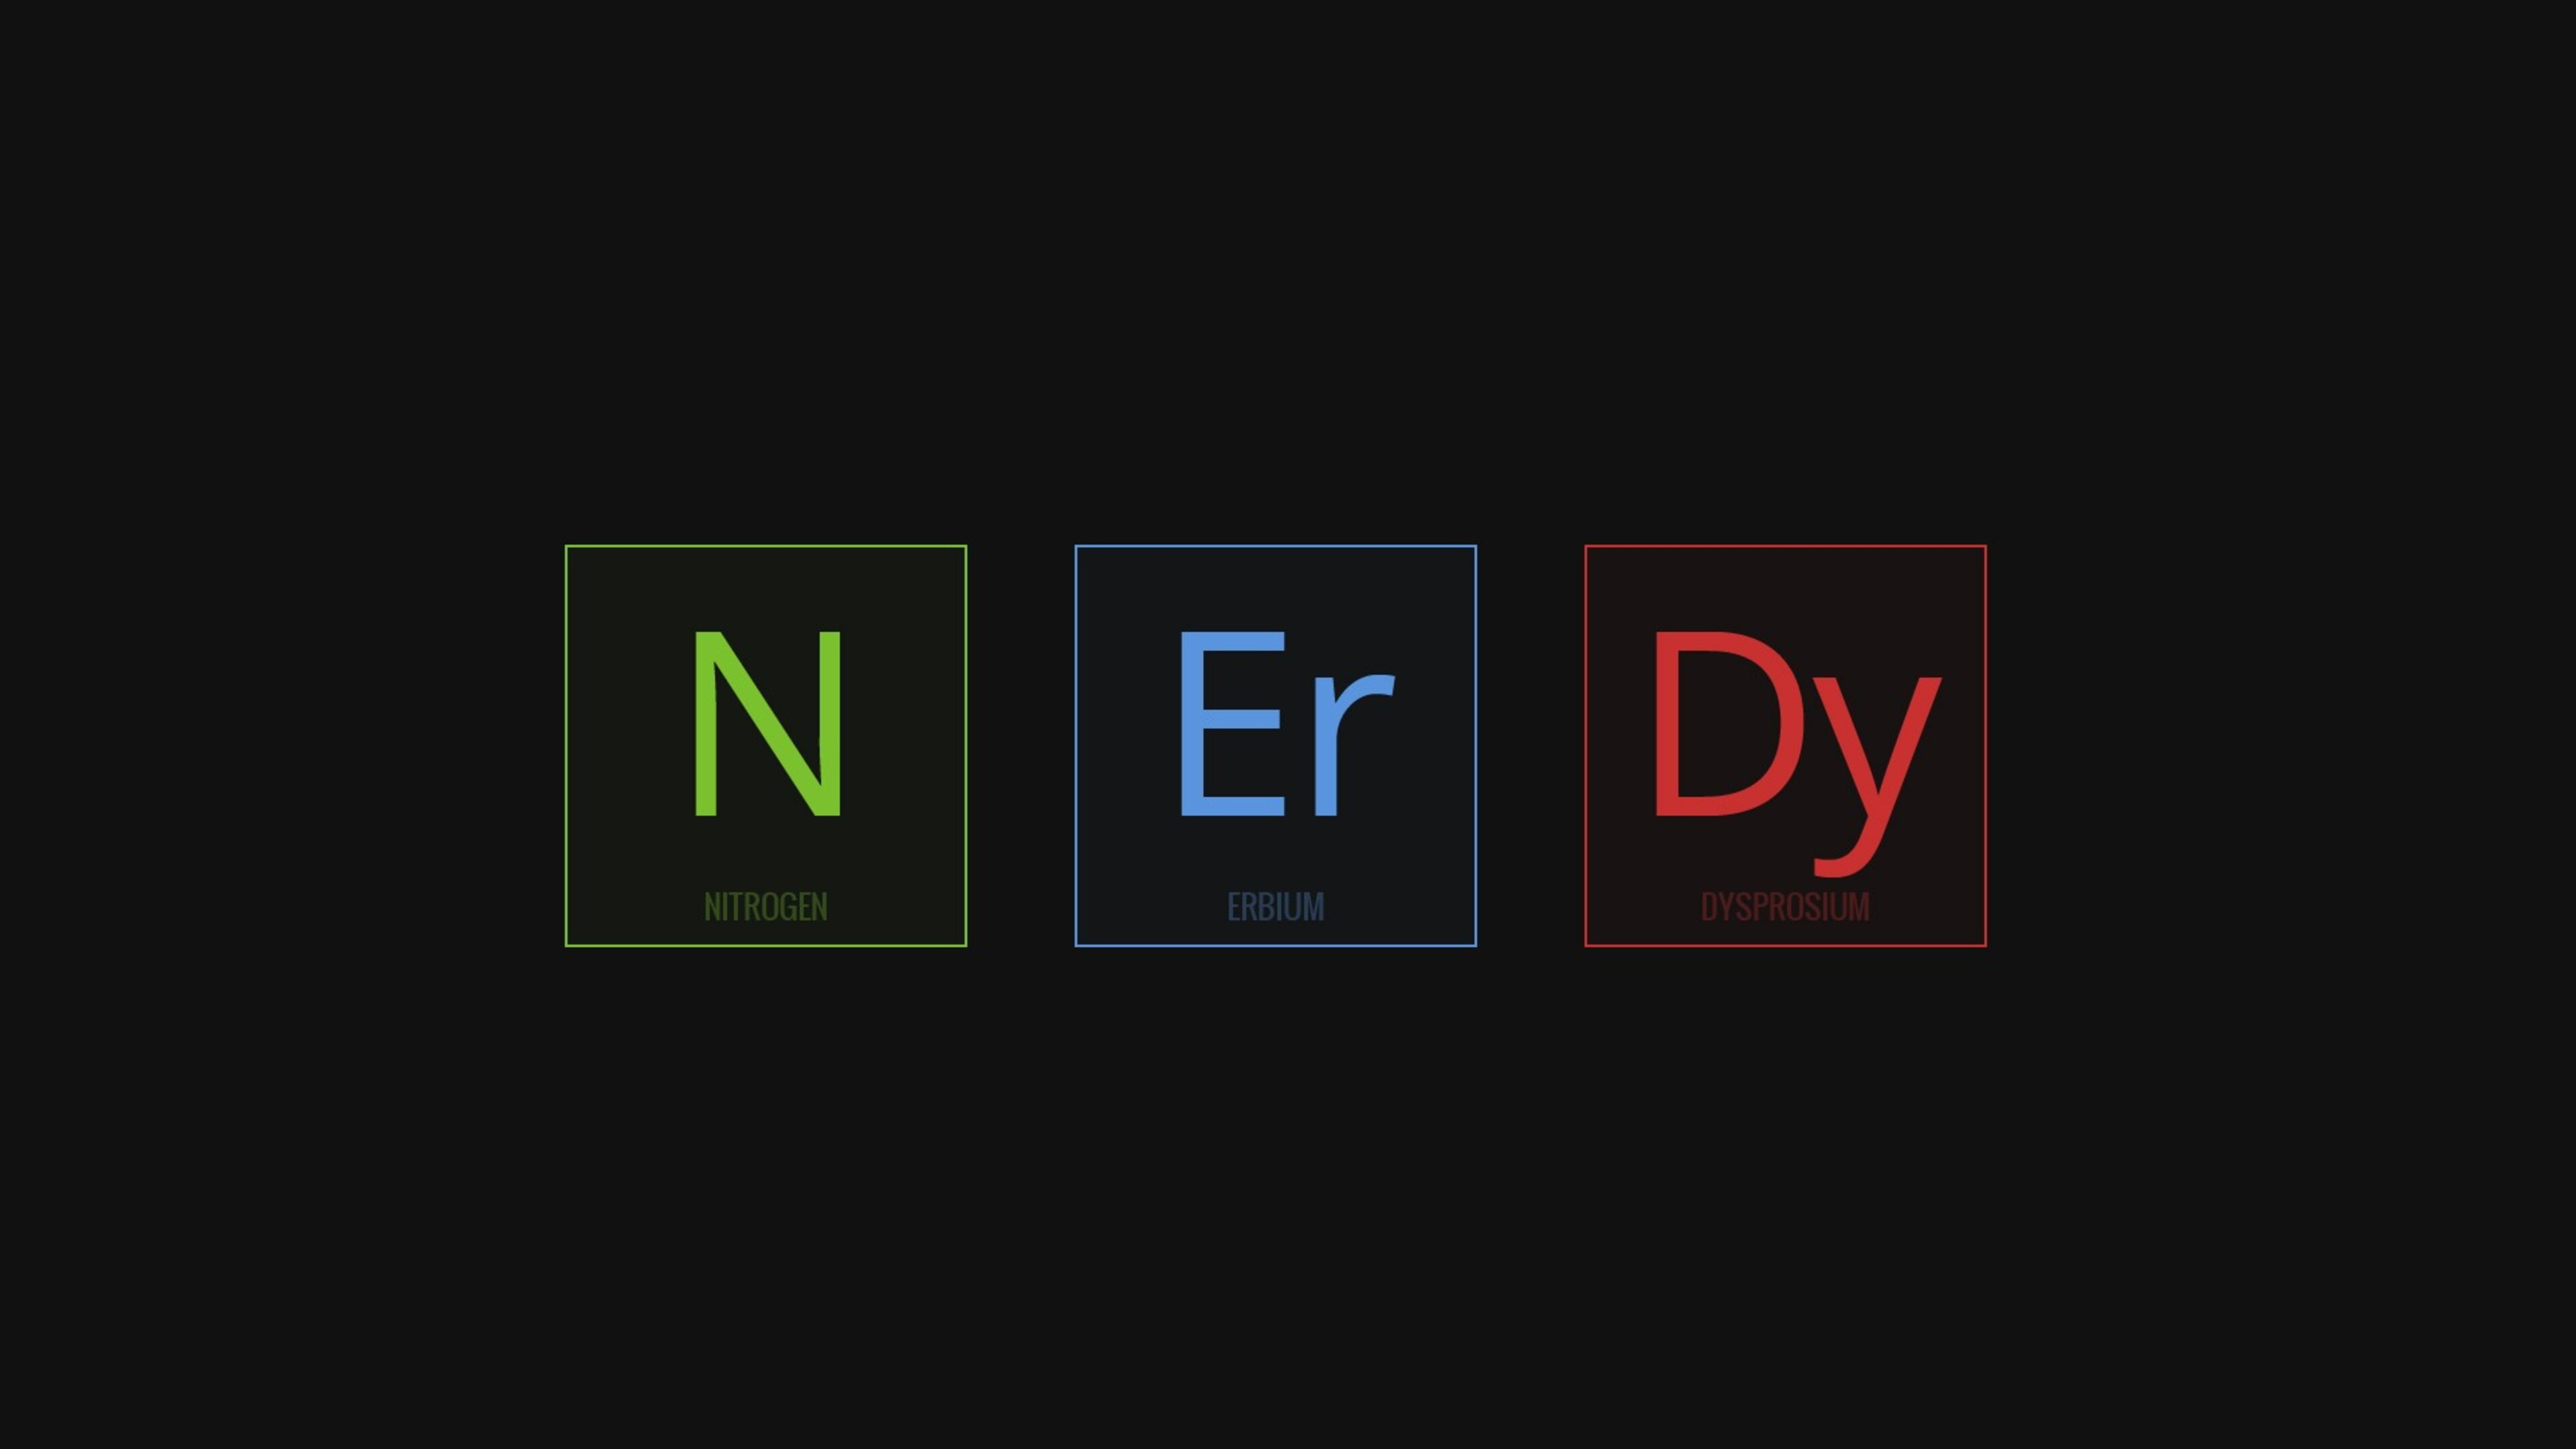 3840x2160 science nerds minimalism 4k hd 4k wallpapers images backgrounds photos and pictures - Nerd wallpaper for walls ...